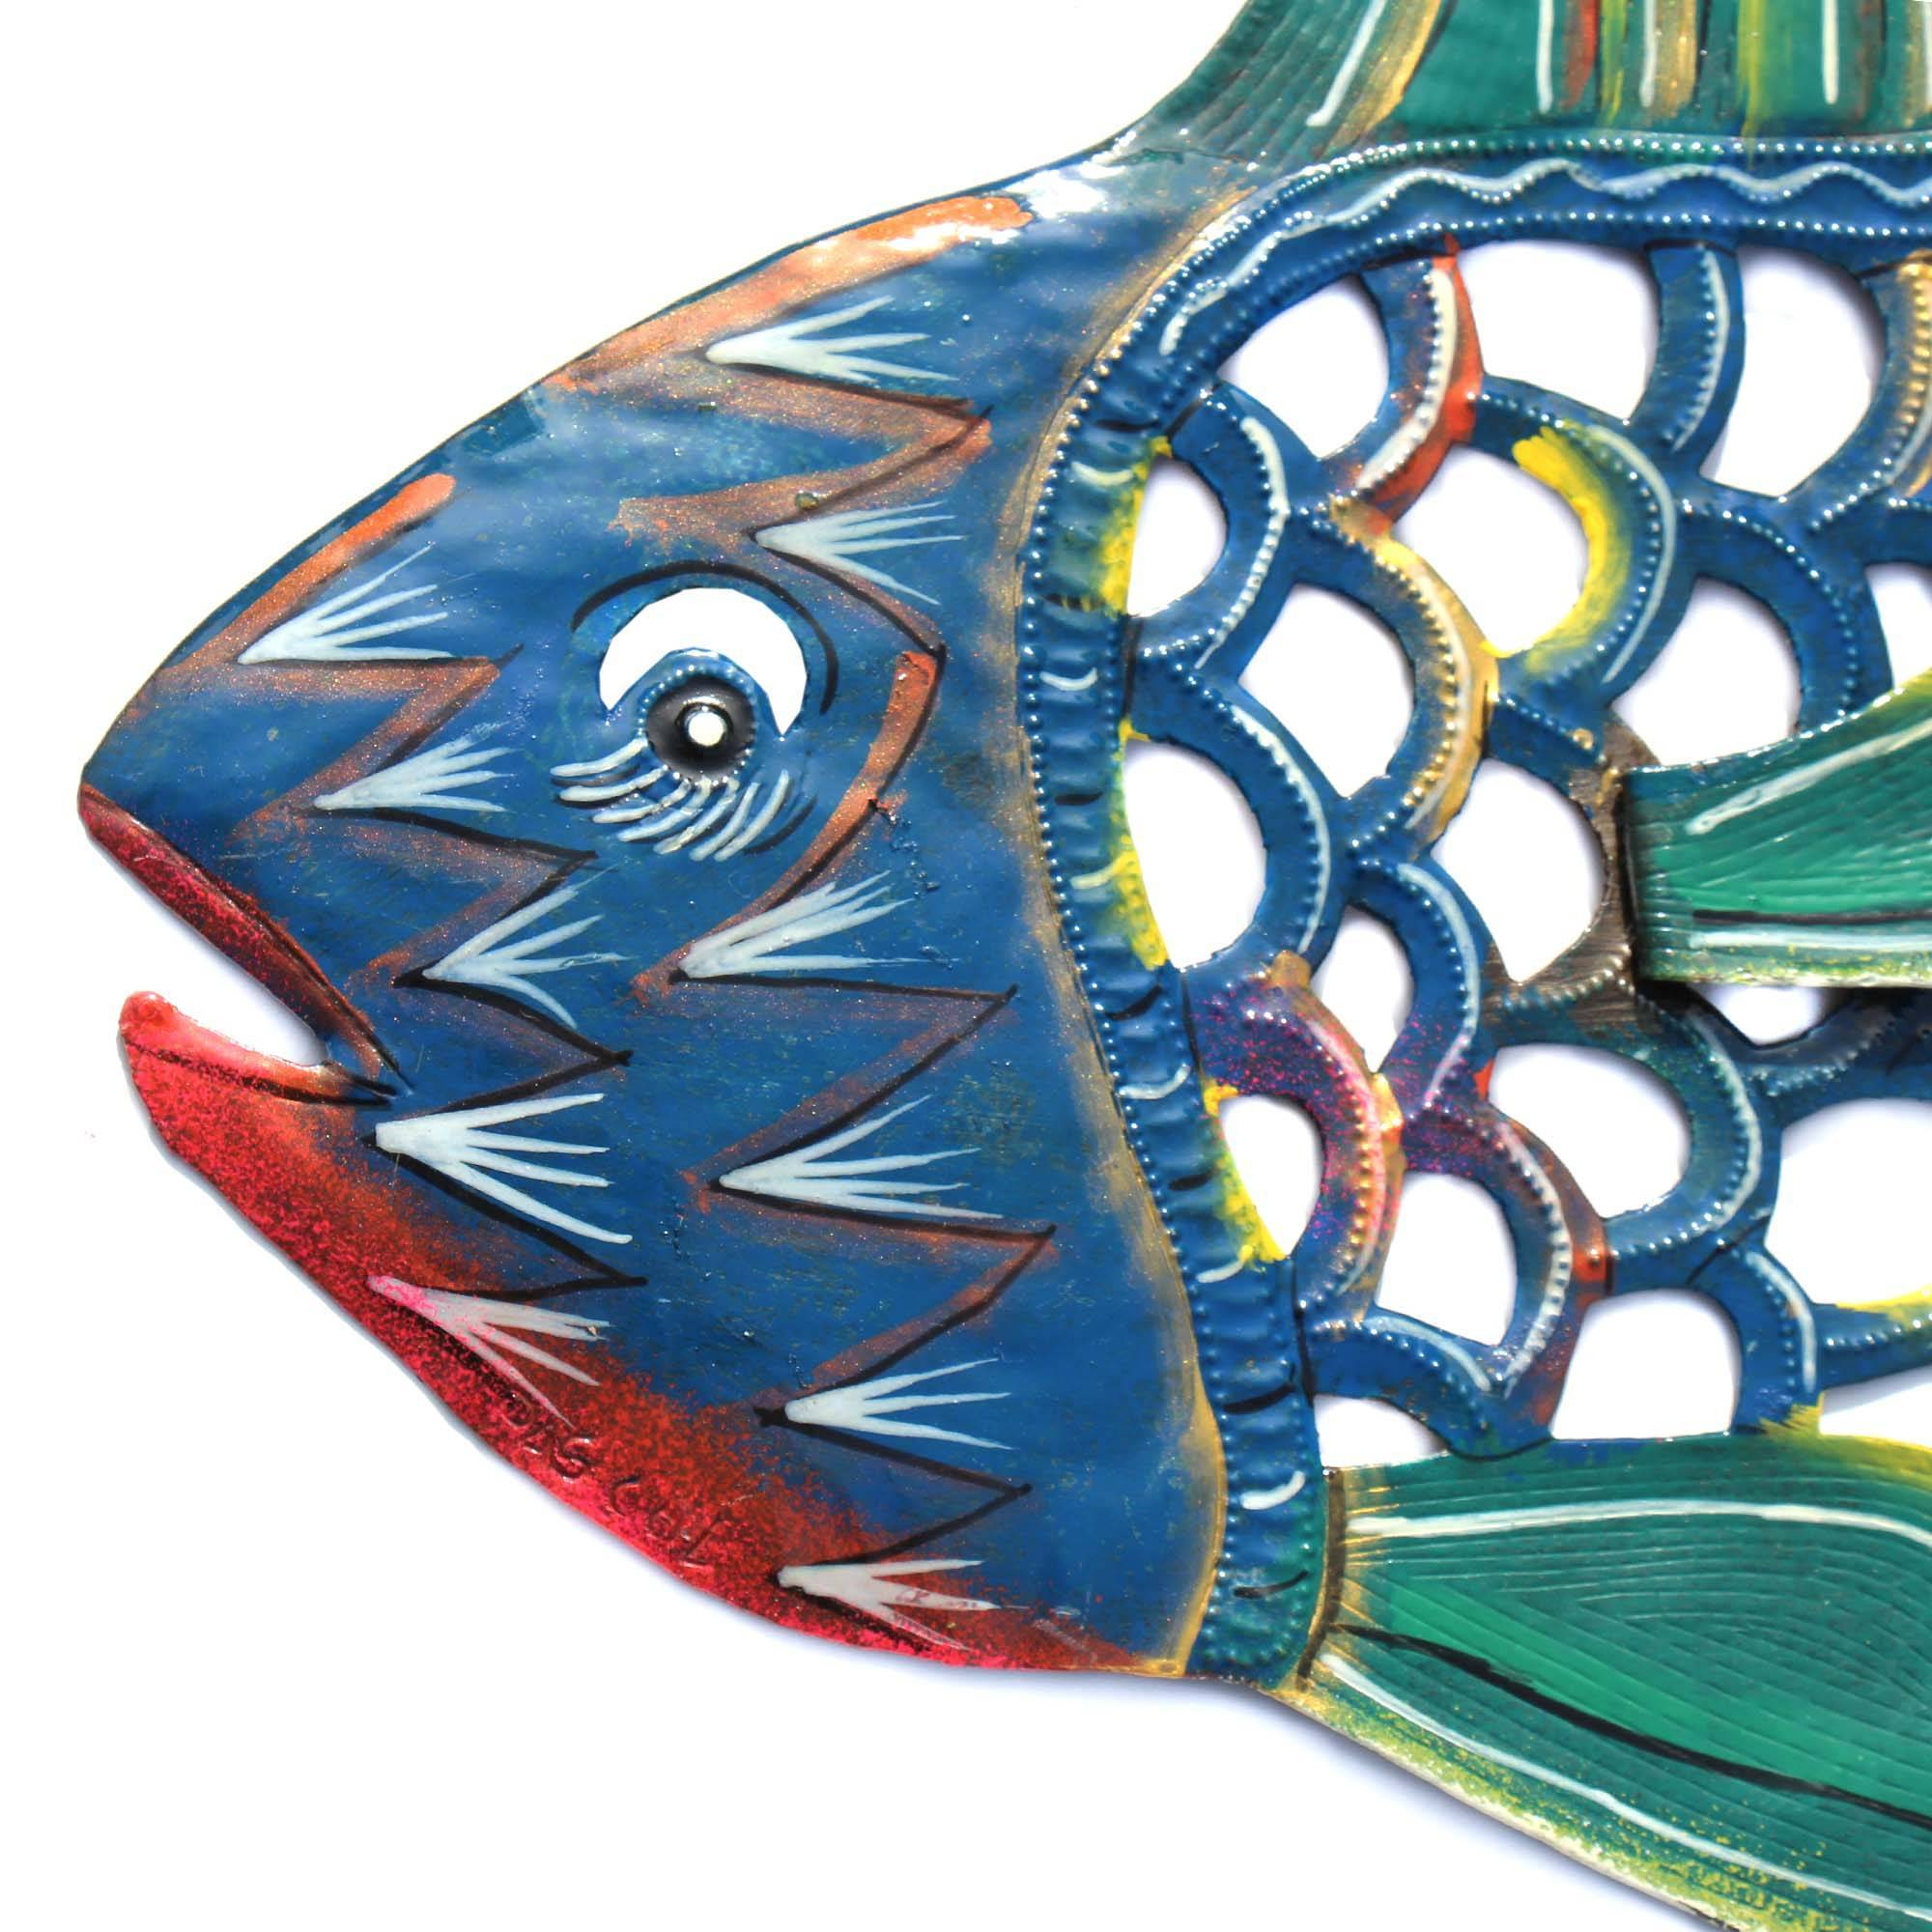 24 inch Painted Fish & Shell - Caribbean Craft image 3